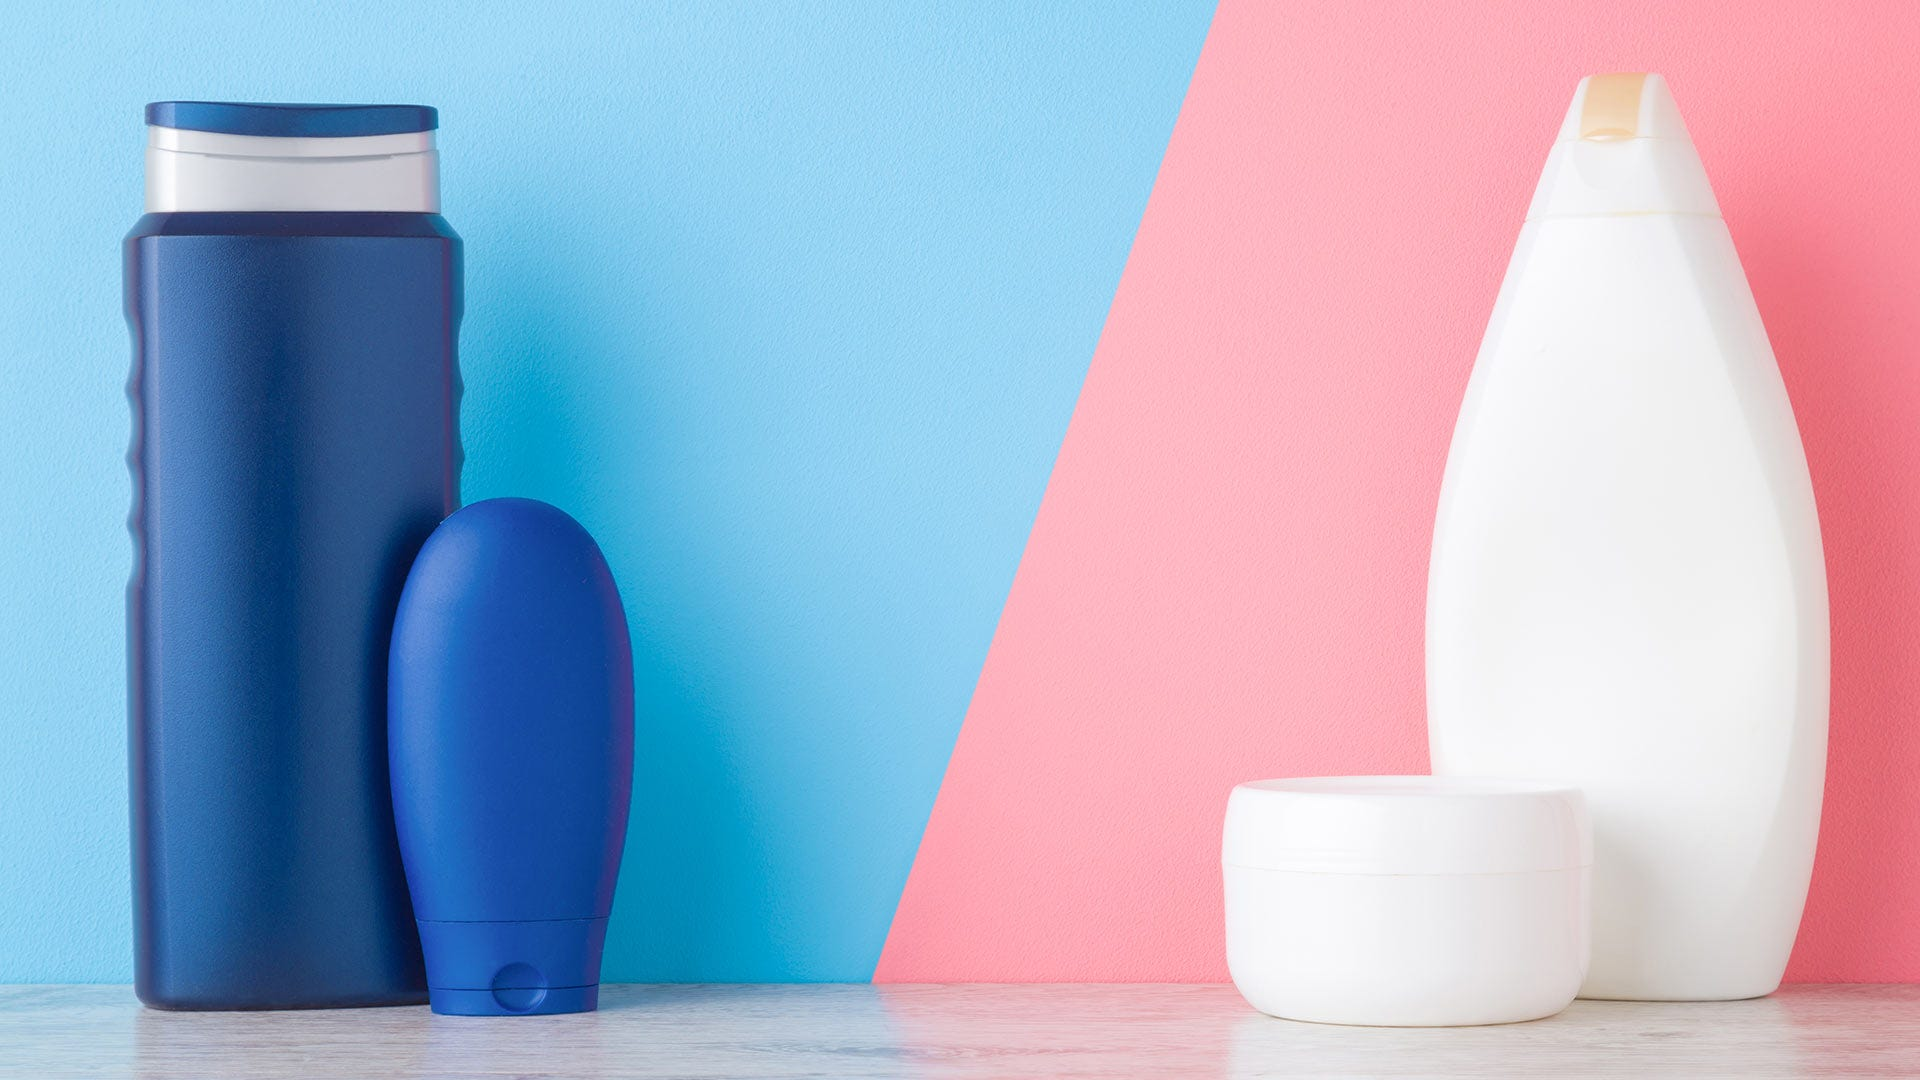 Blue and pink skincare products on a table.